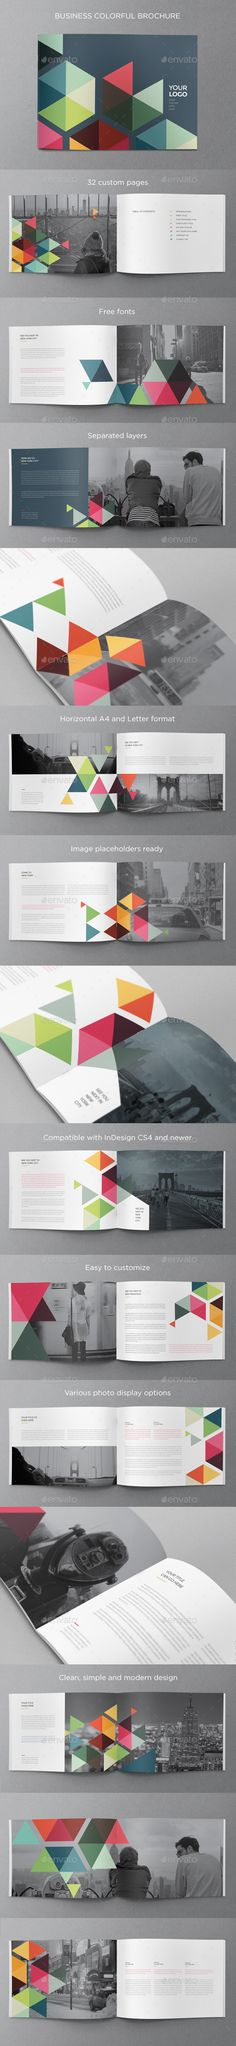 Business Colorful Brochure — InDesign INDD #pattern #letter • Available here → https://graphicriver.net/item/business-colorful-brochure/10859836?ref=pxcr